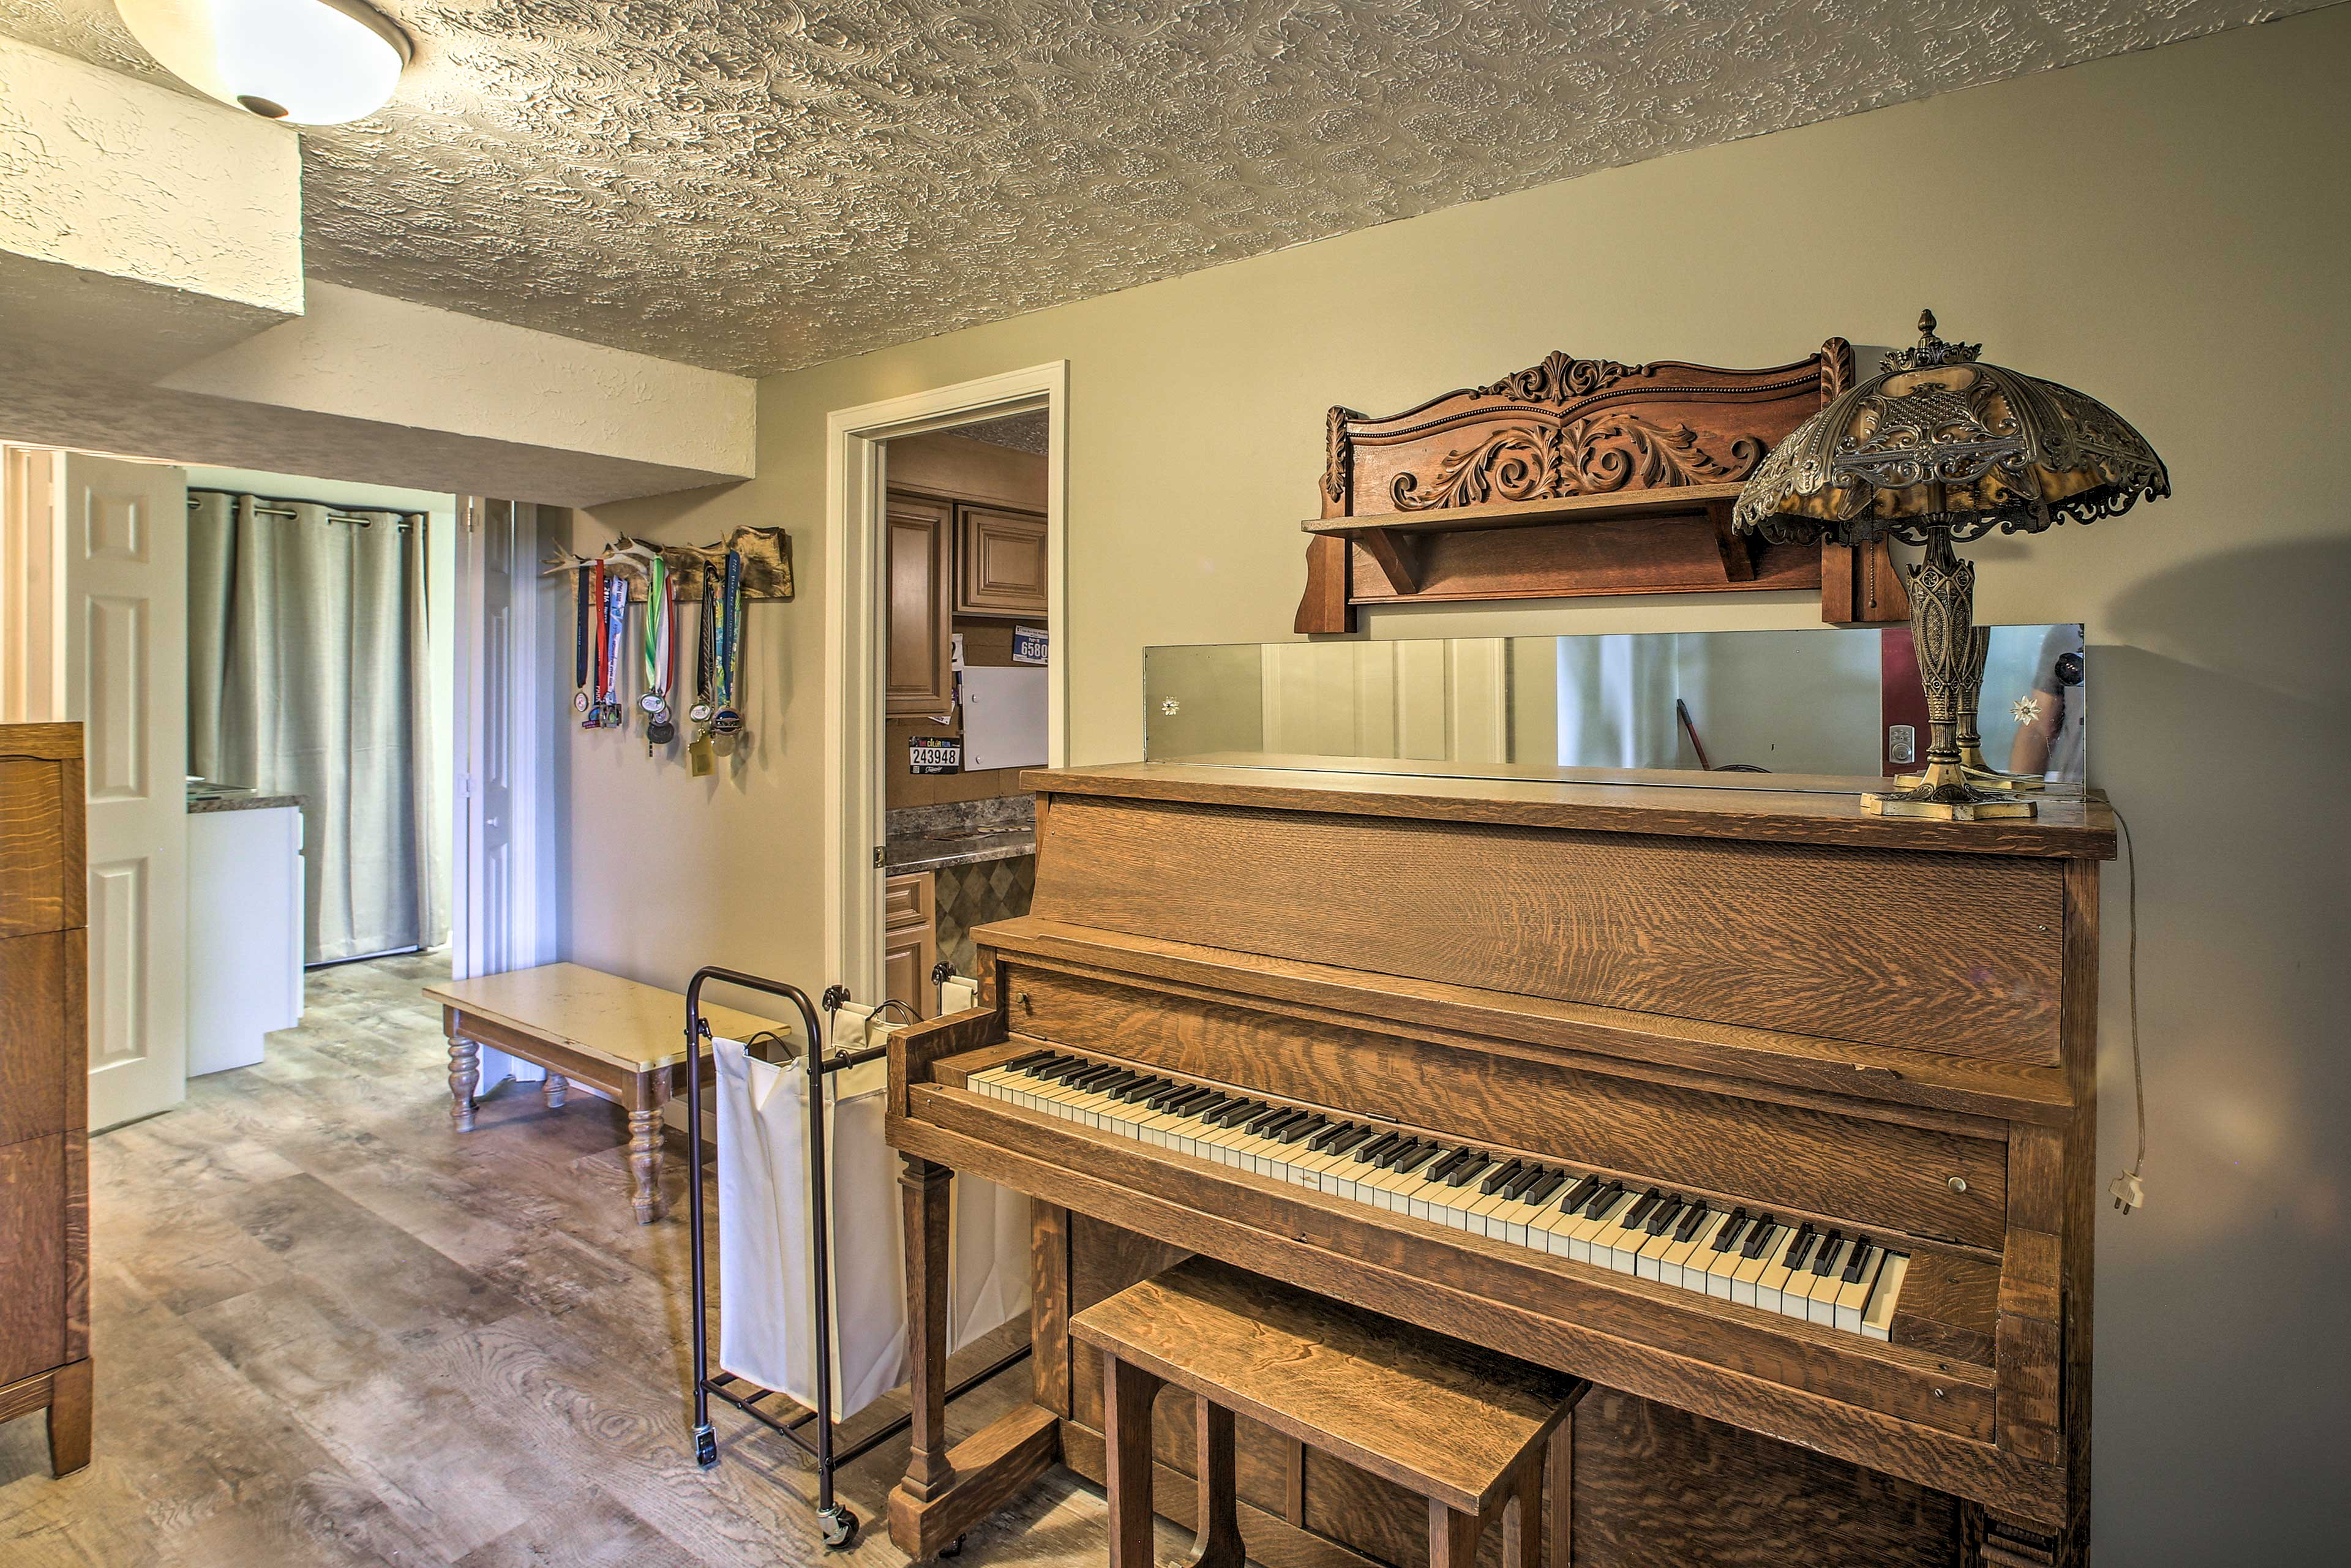 Play a tune for friends on the piano in the entryway.